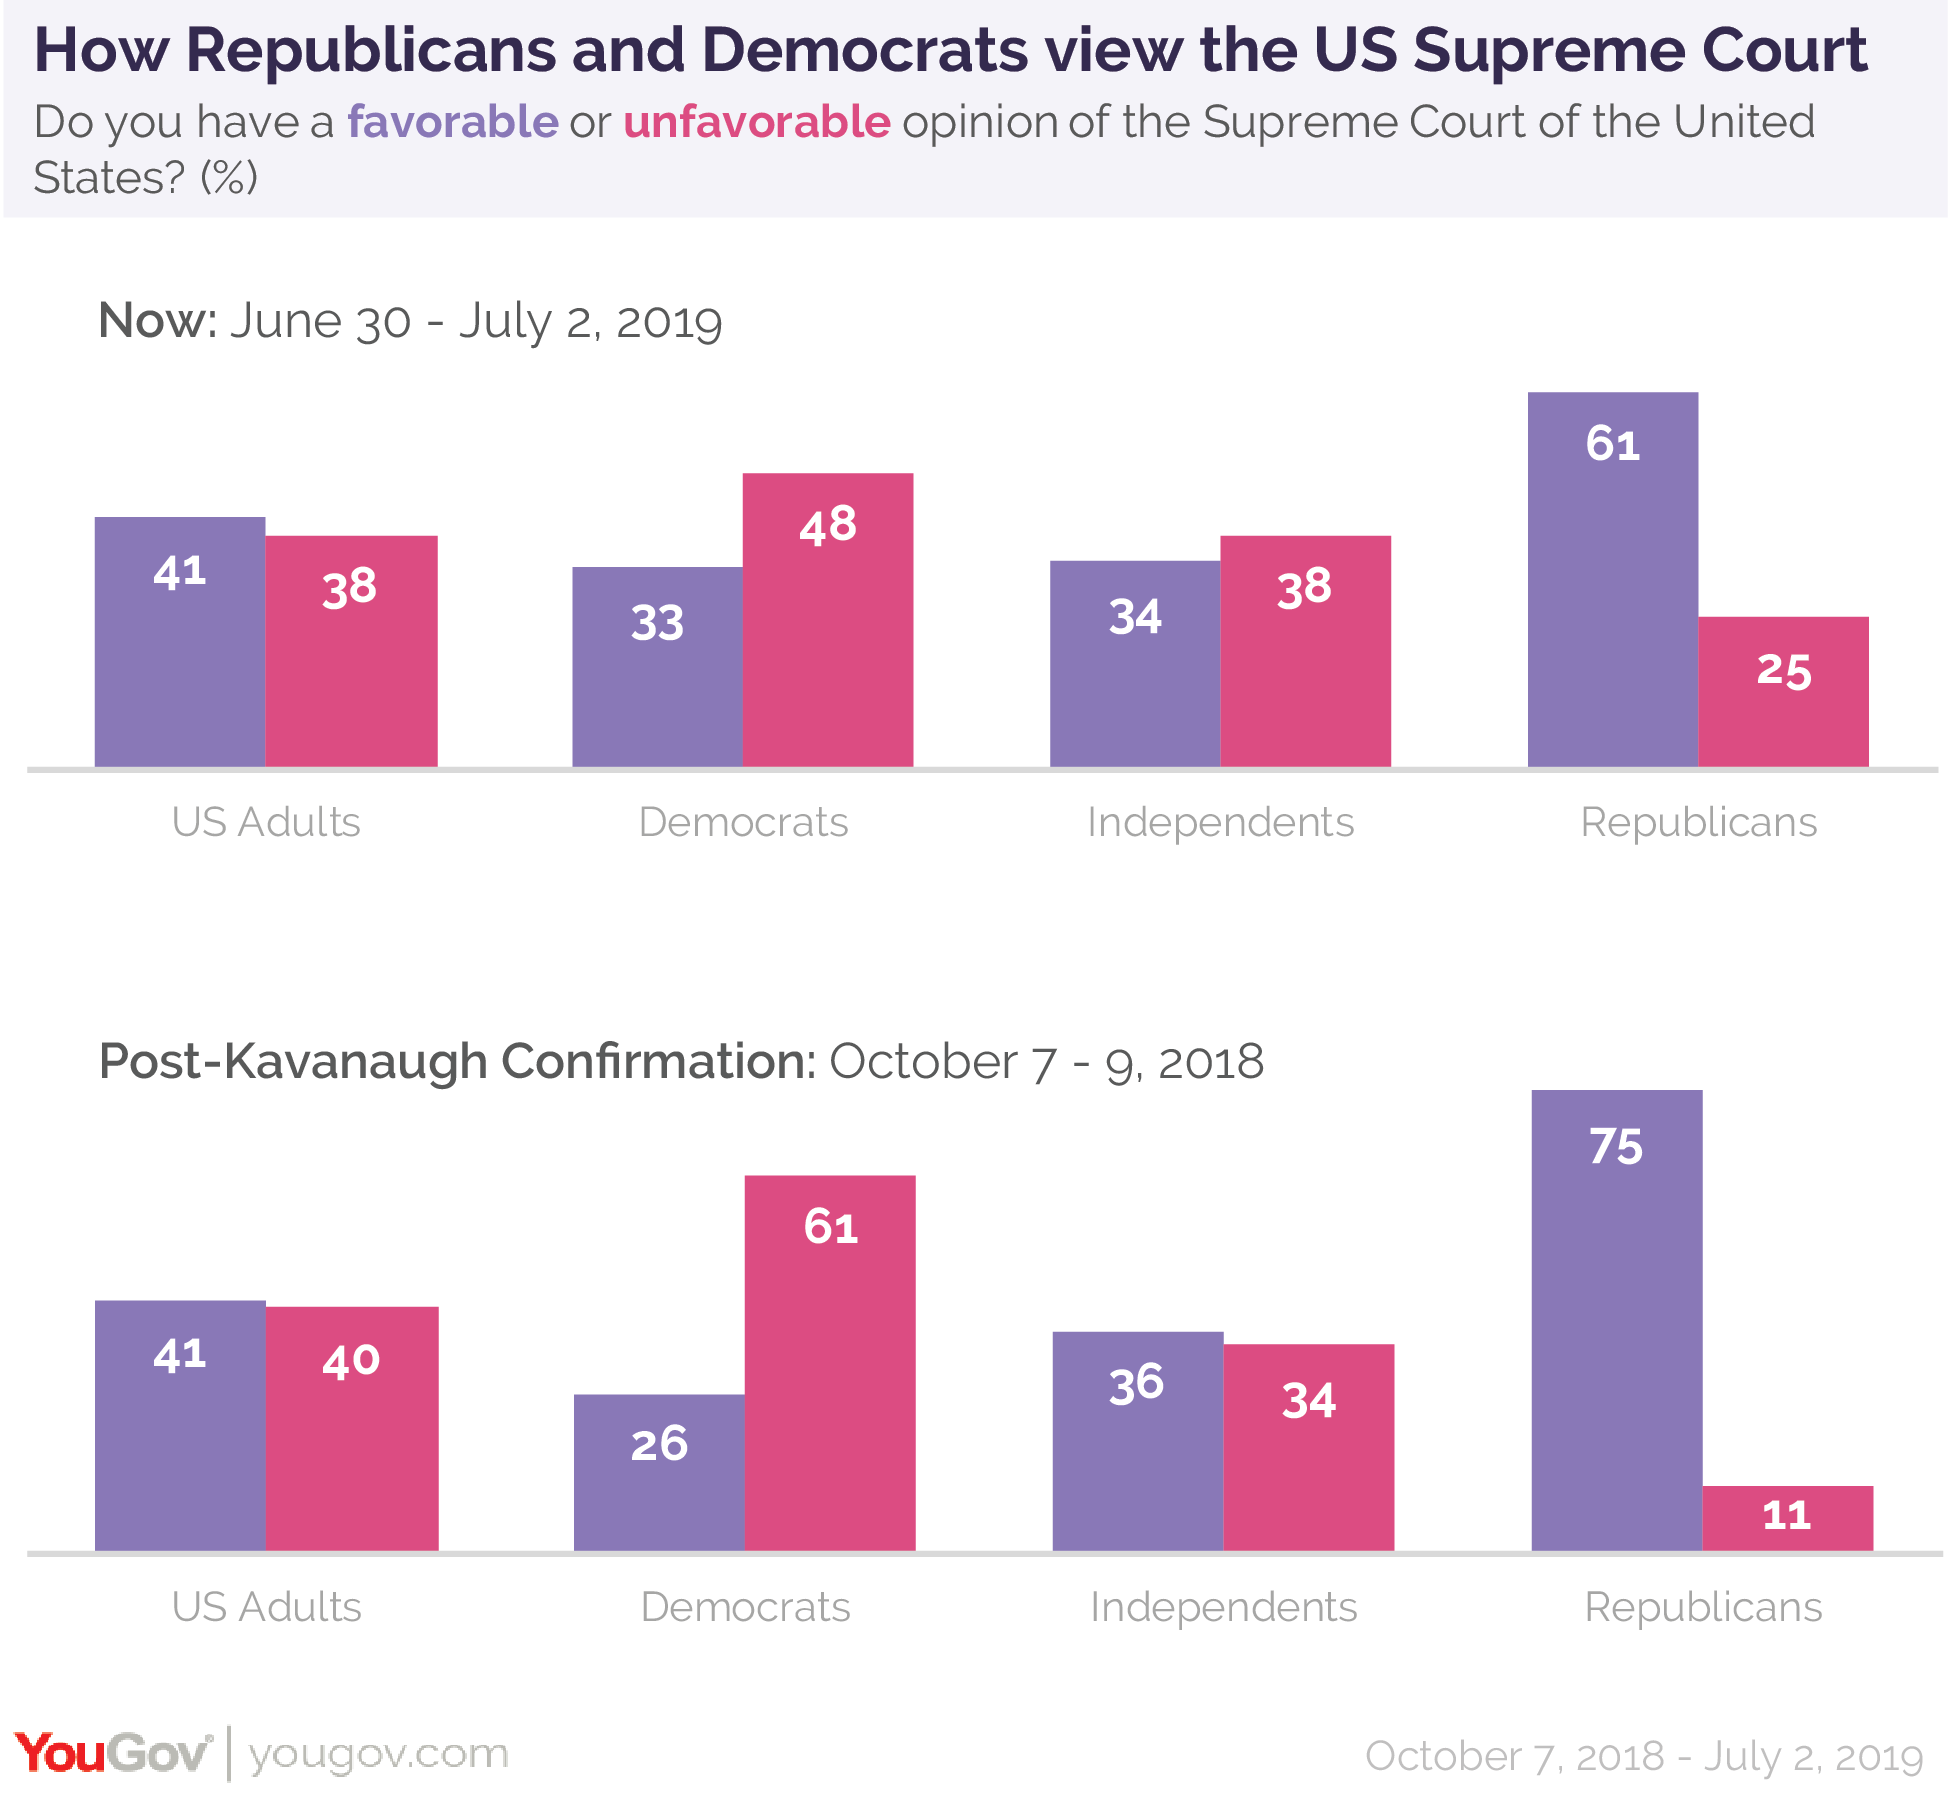 How Republicans and Democrats view the US Supreme Court